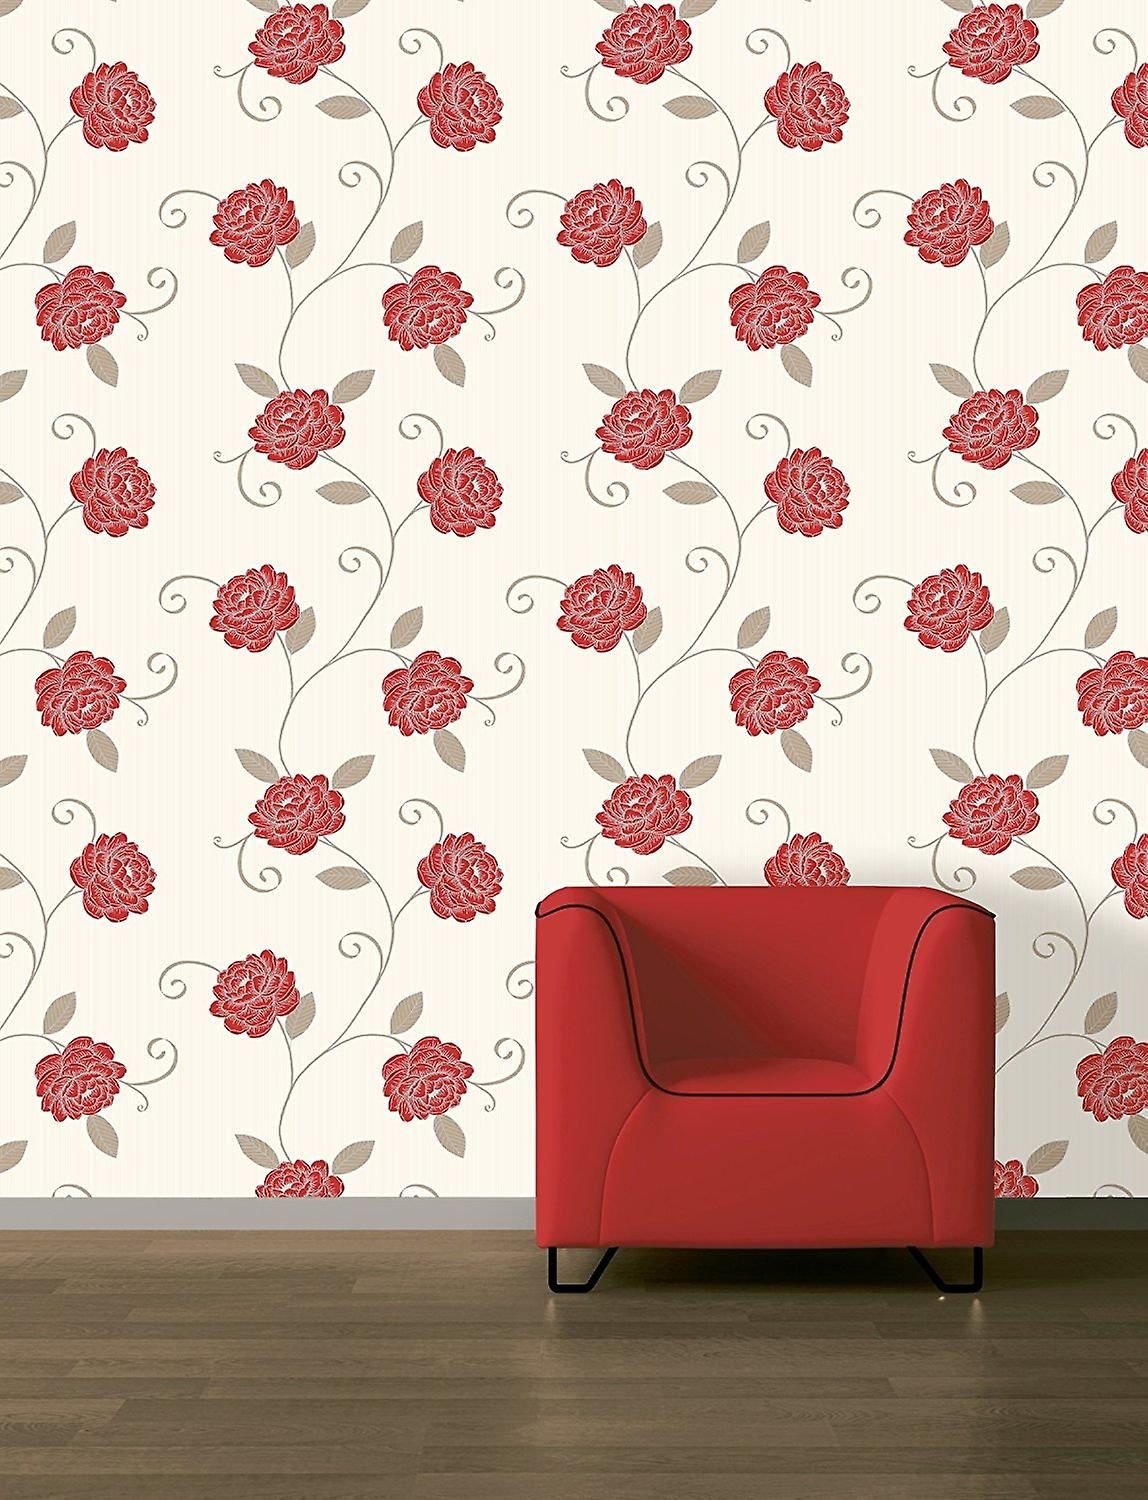 Puccini Floral Flower Leaf Red Cream Wallpaper Feature Wall